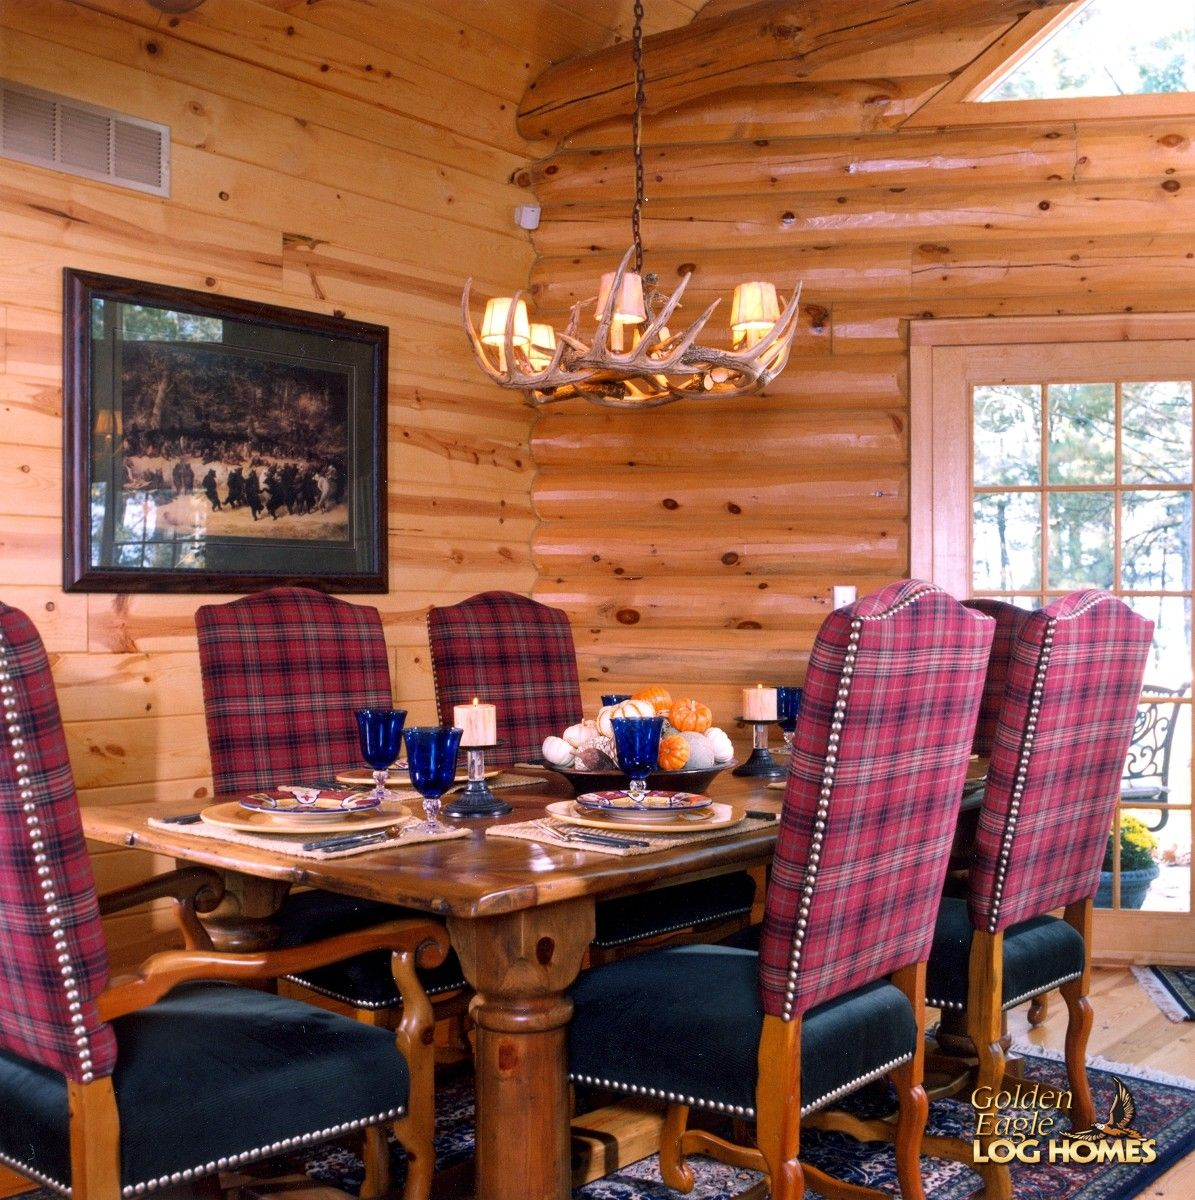 Superieur Golden Eagle Log And Timber Homes: Log Home / Cabin Pictures, Photos:  Custom Eagle Prow V